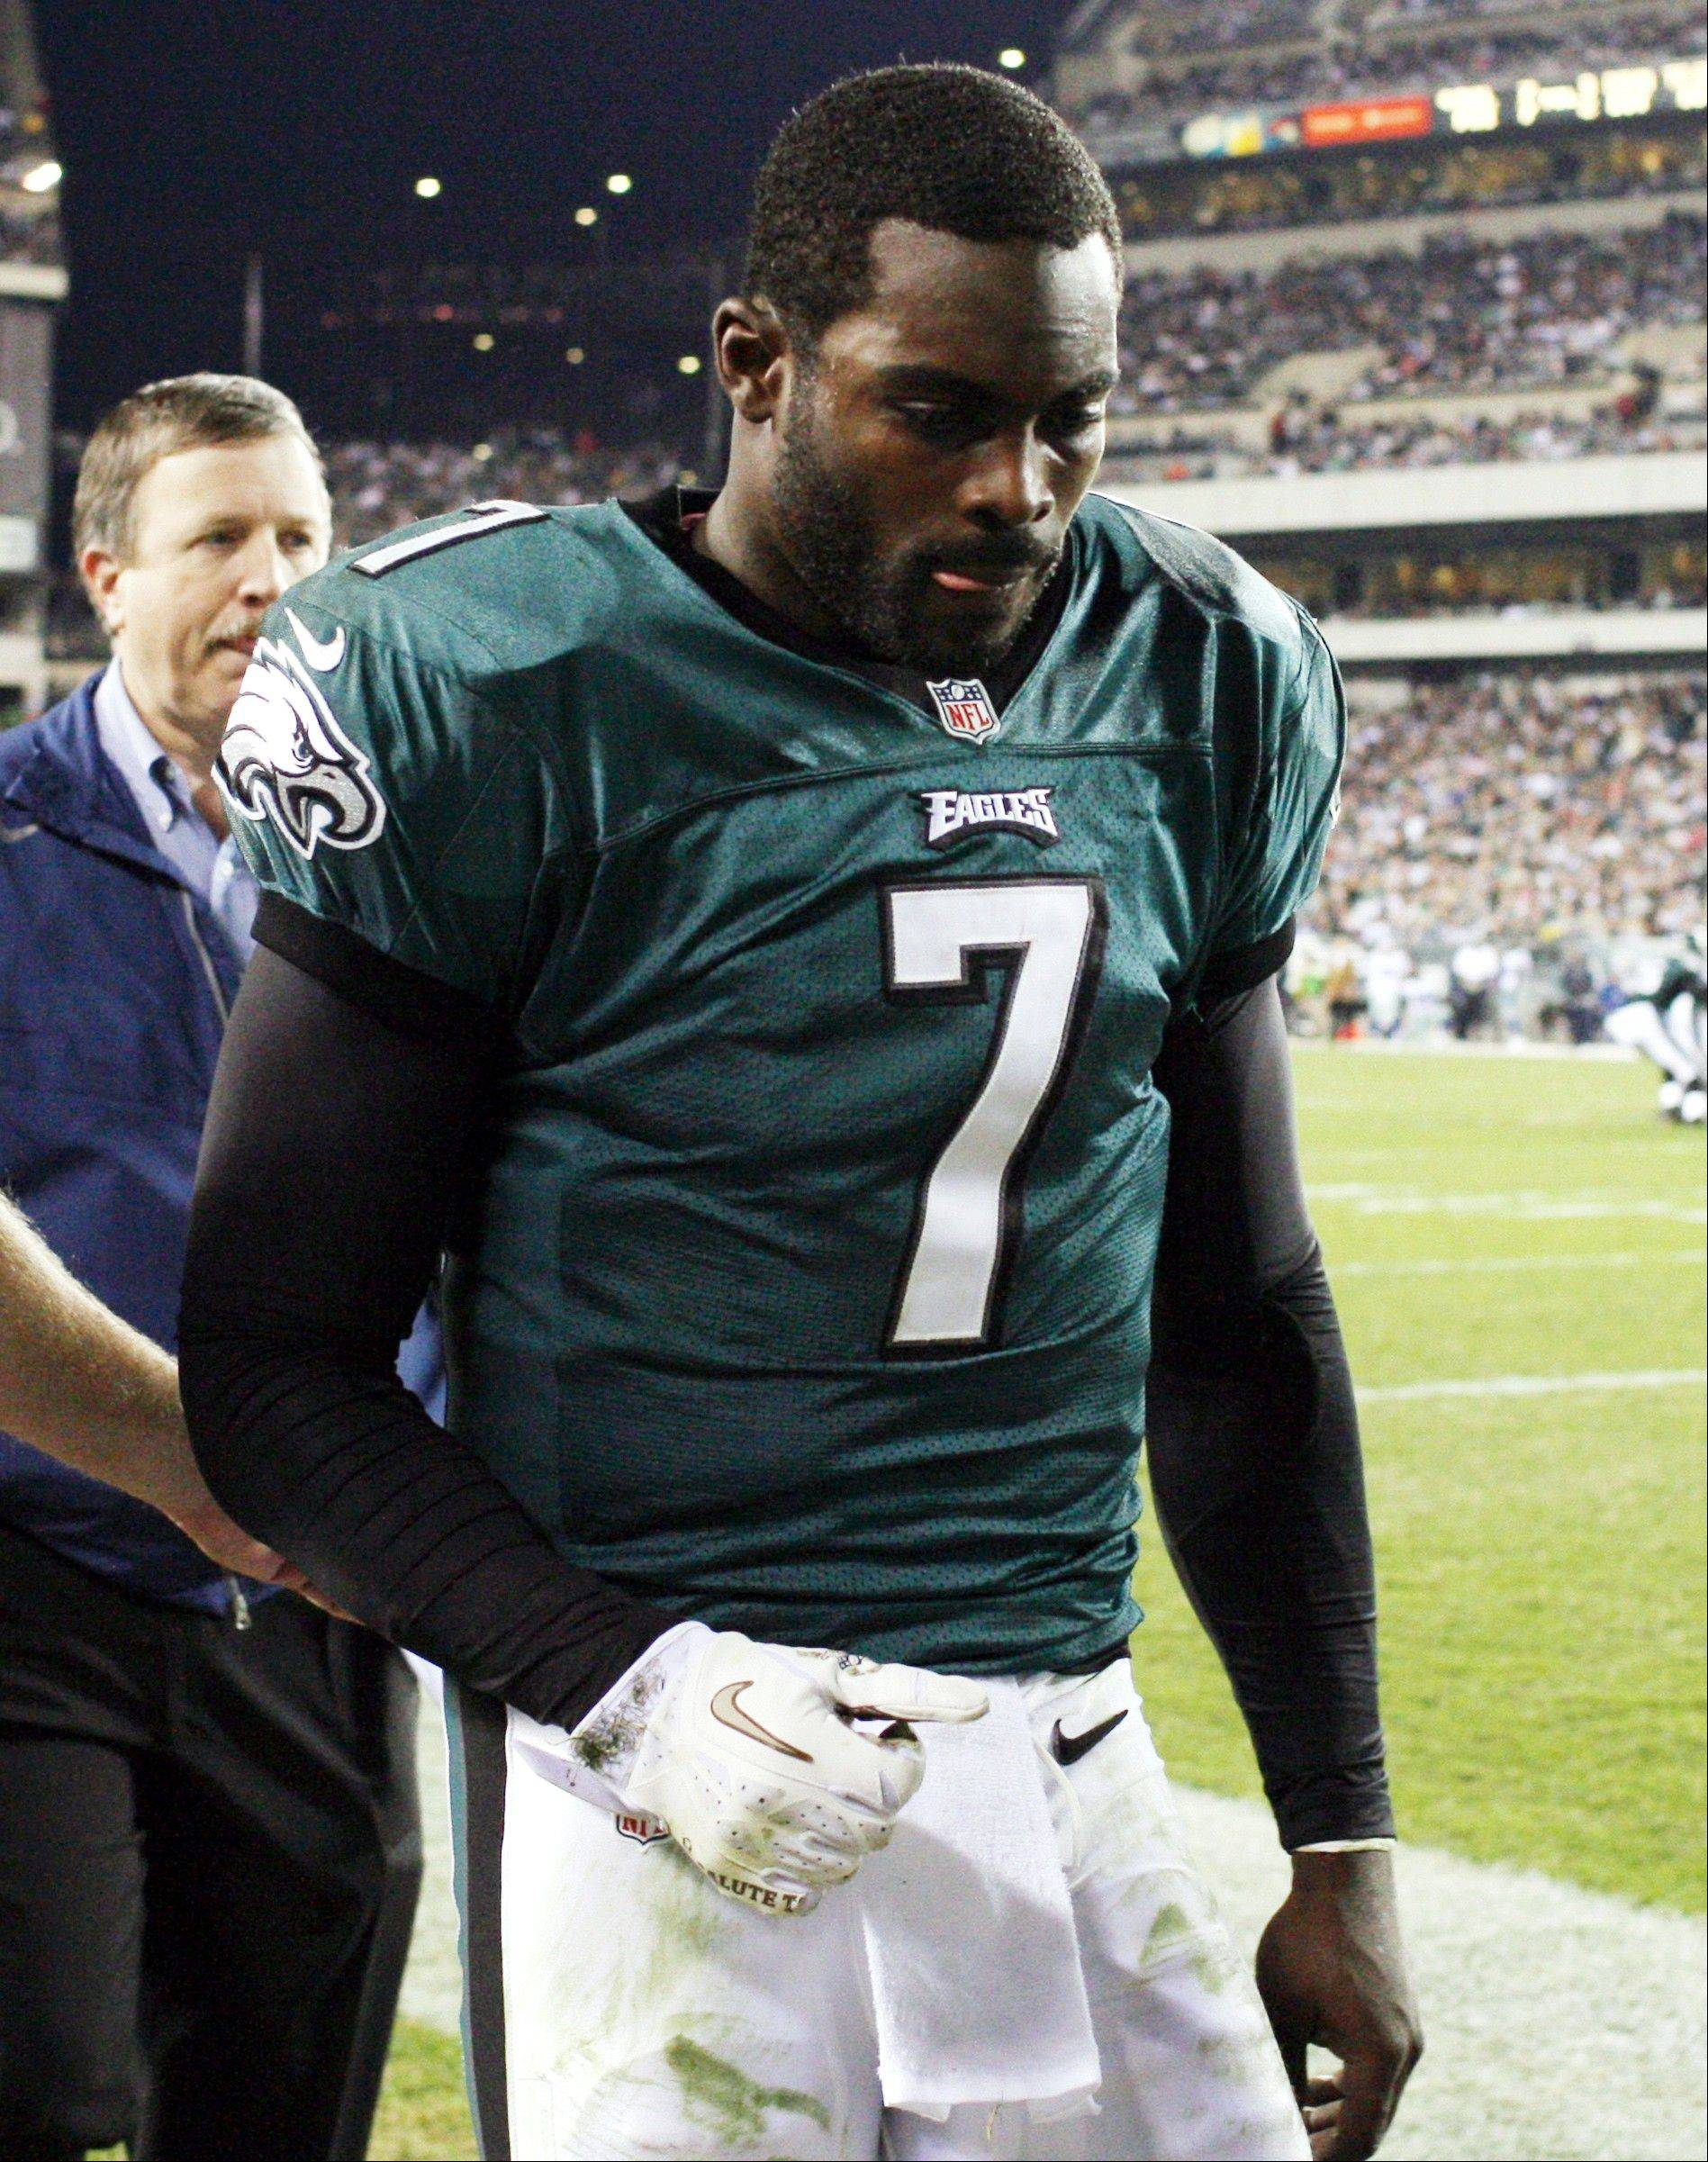 Philadelphia Eagles quarterback Michael Vick leaves the field after suffering a concussion Sunday during the second quarter against the Dallas Cowboys in Philadelphia. Vick has not been ruled out for Sunday's game against Washington.